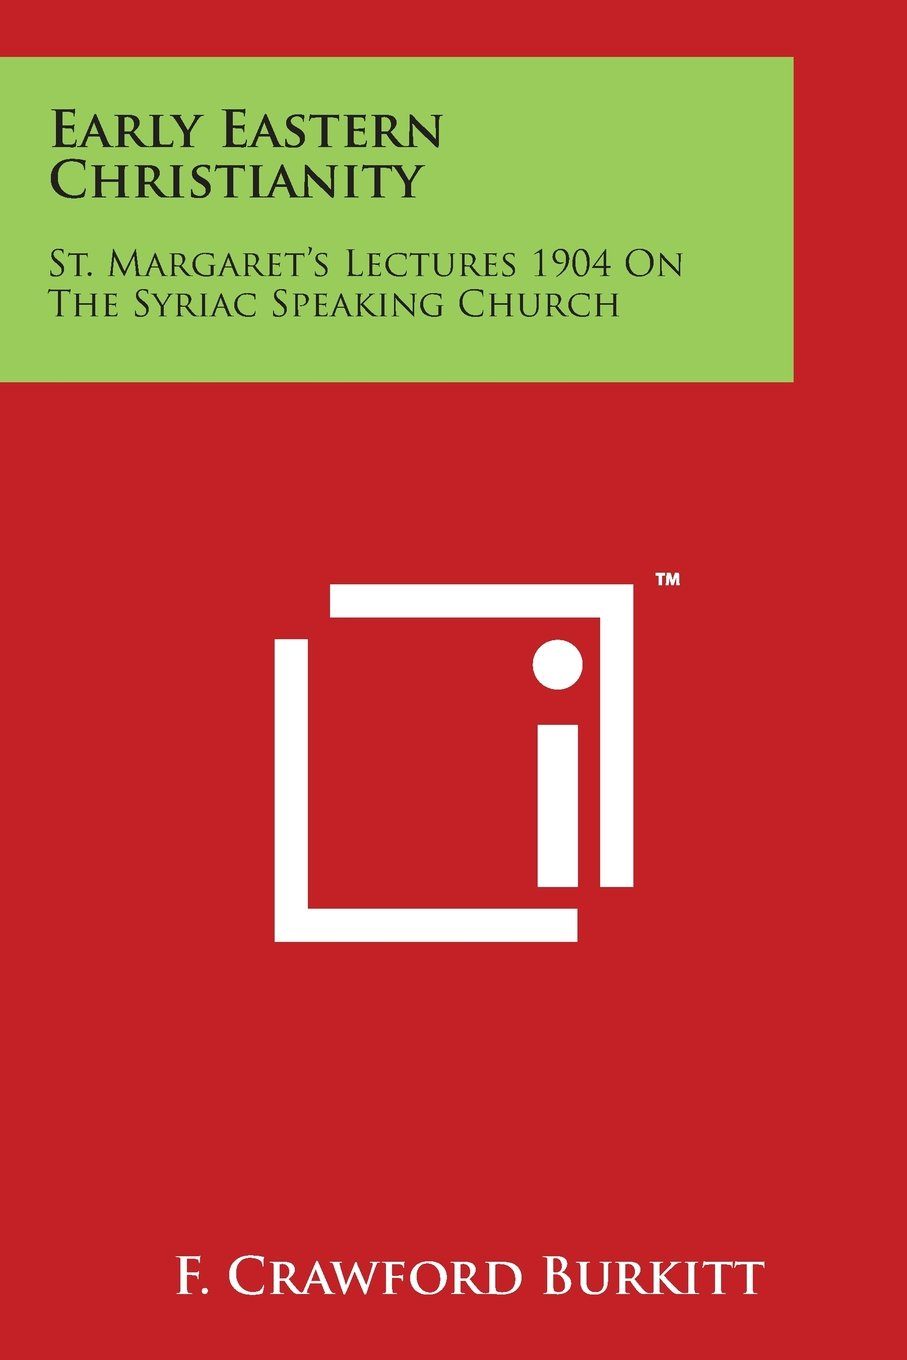 Early Eastern Christianity: St. Margaret's Lectures 1904 On The Syriac Speaking Church pdf